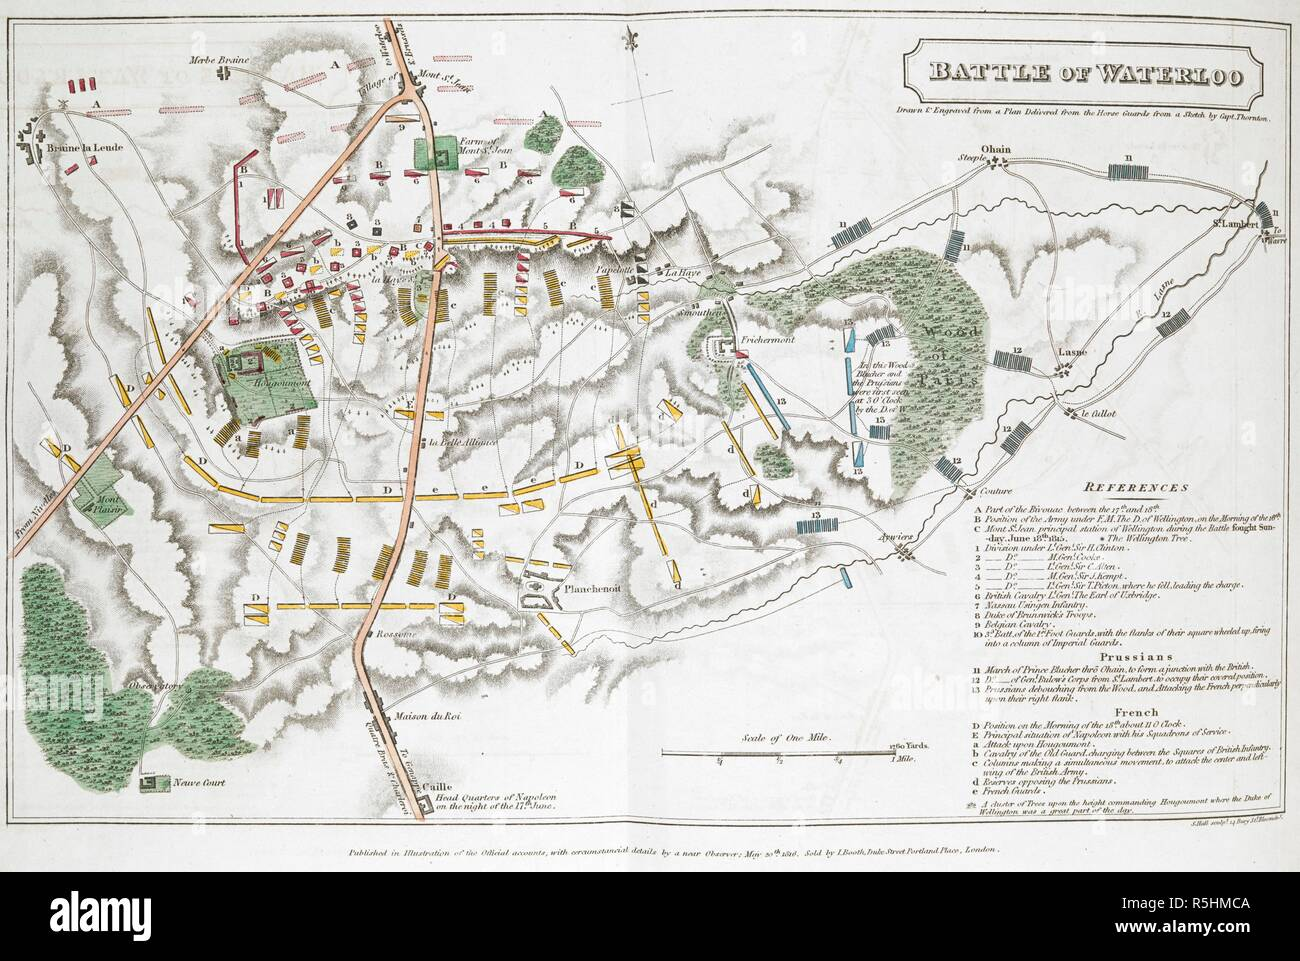 Battle of Waterloo  Drawn & engraved from a plan delivered